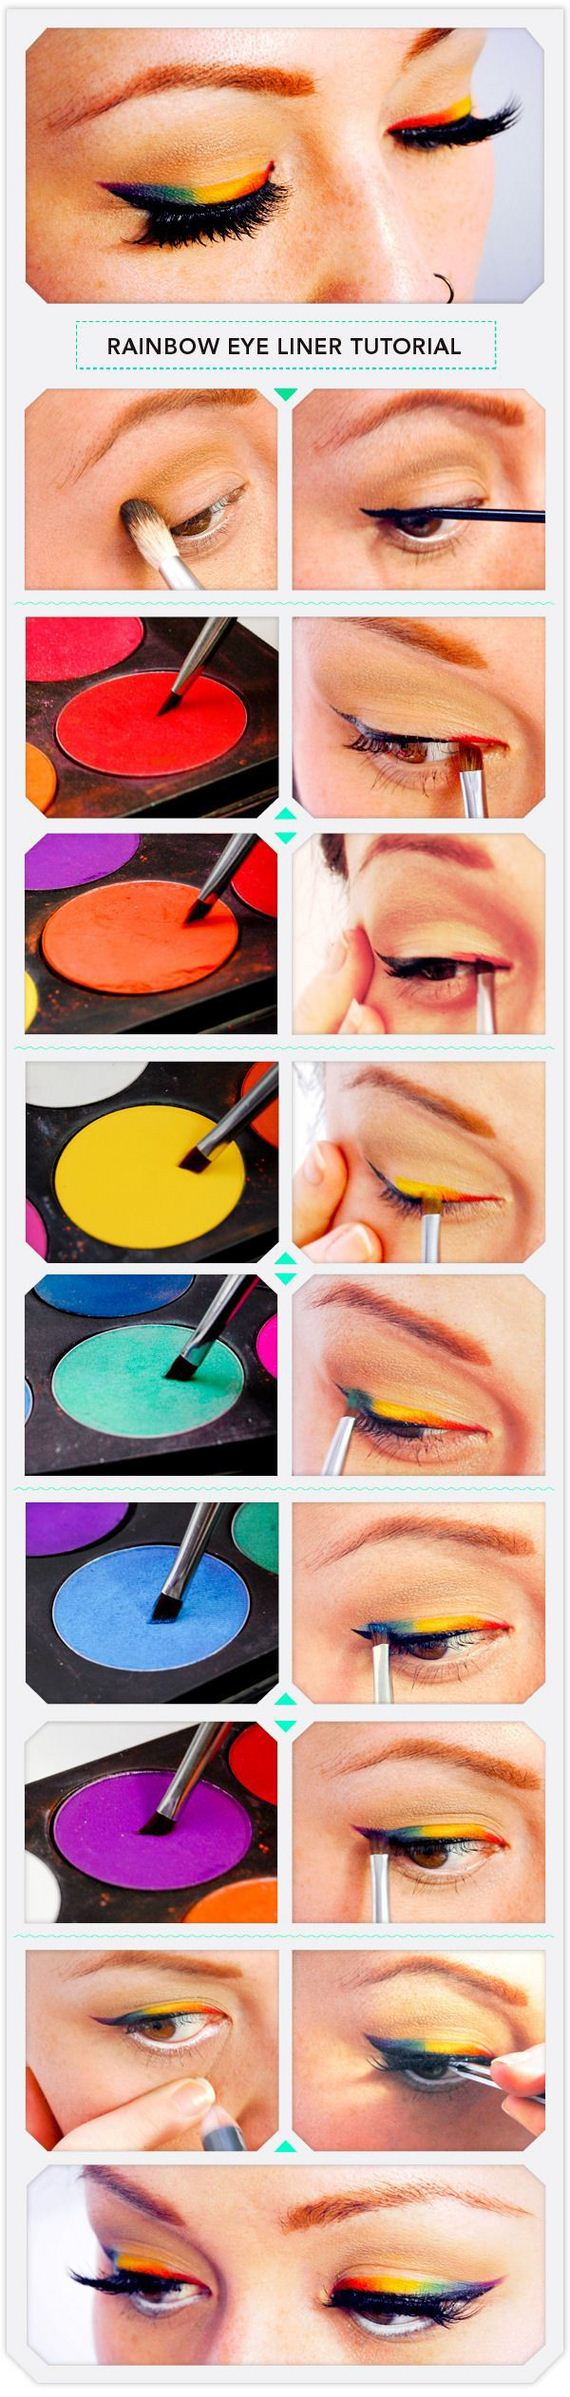 05-Fun-Eyeliner-Tutorials